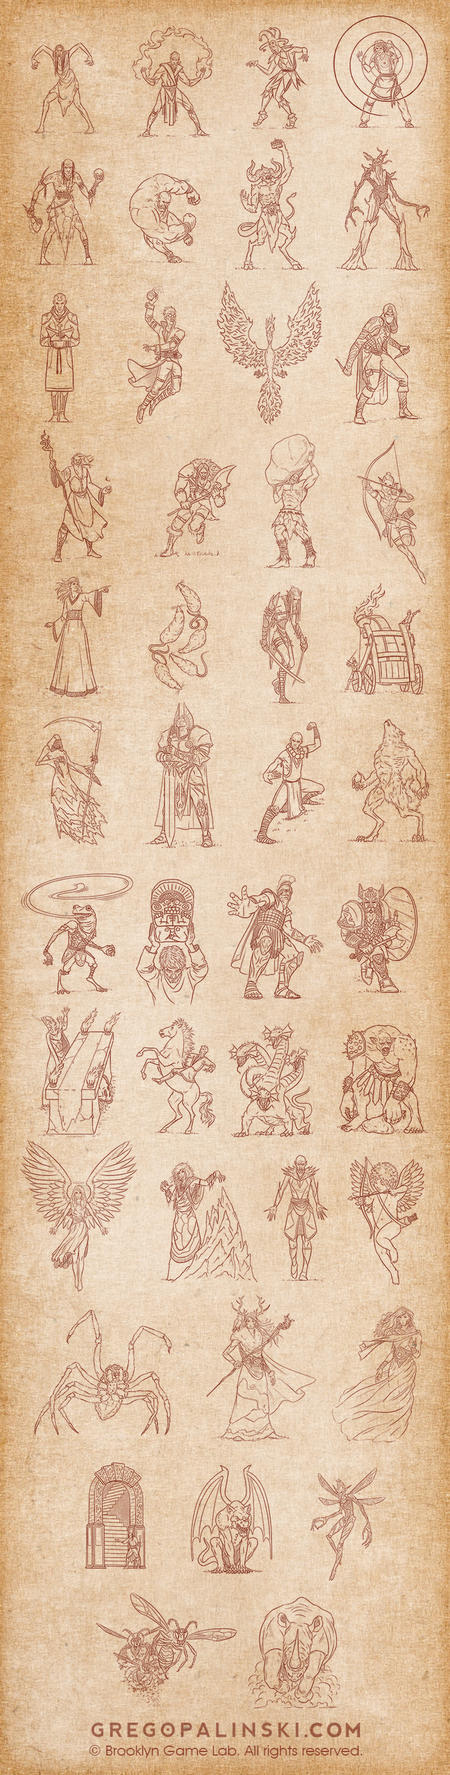 Character sketches by Greg-Opalinski